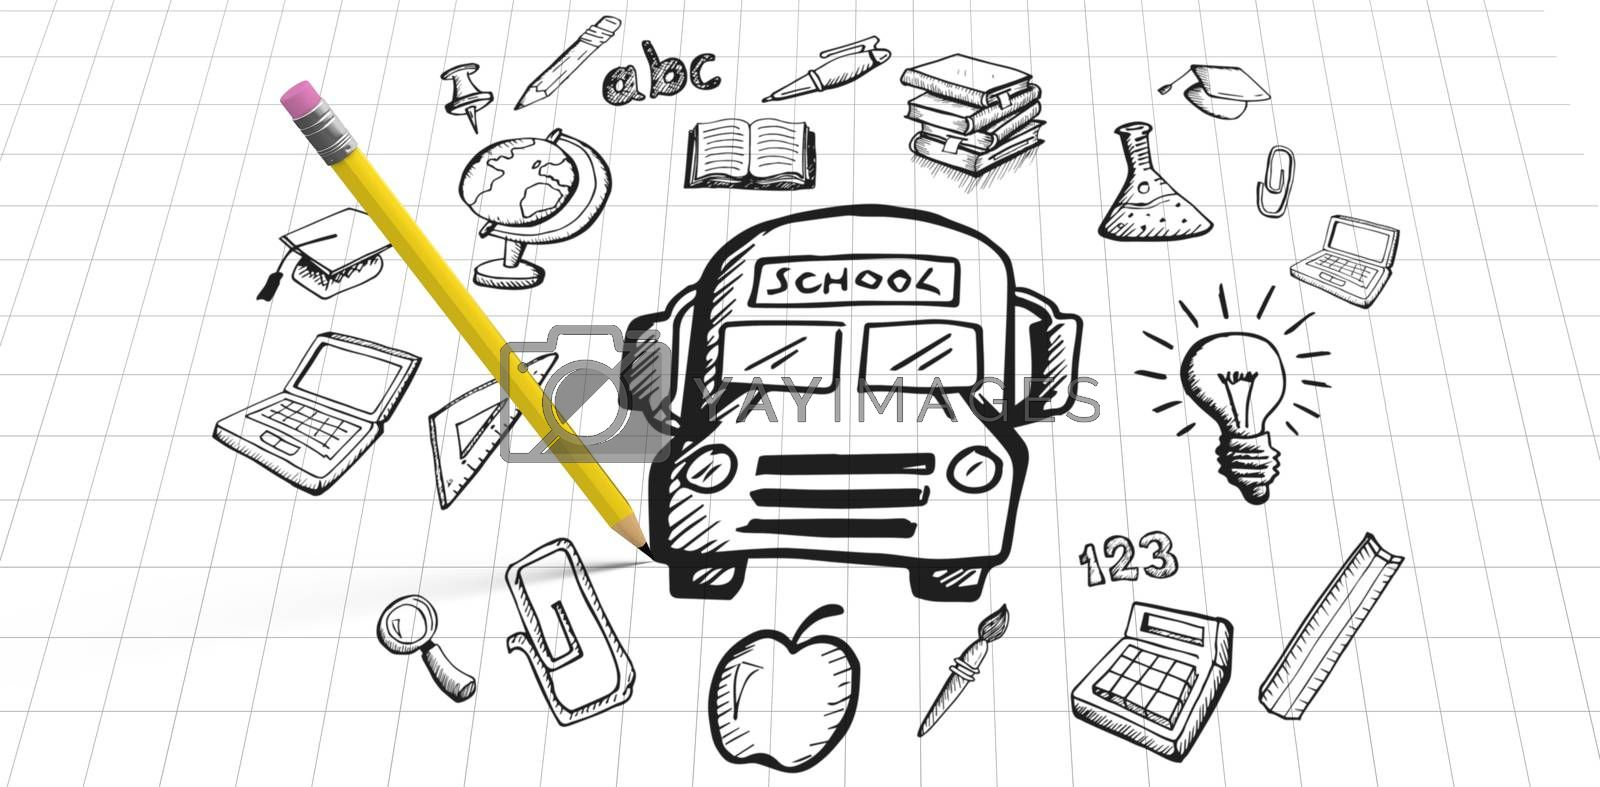 Computer graphic image of pencil against education doodles